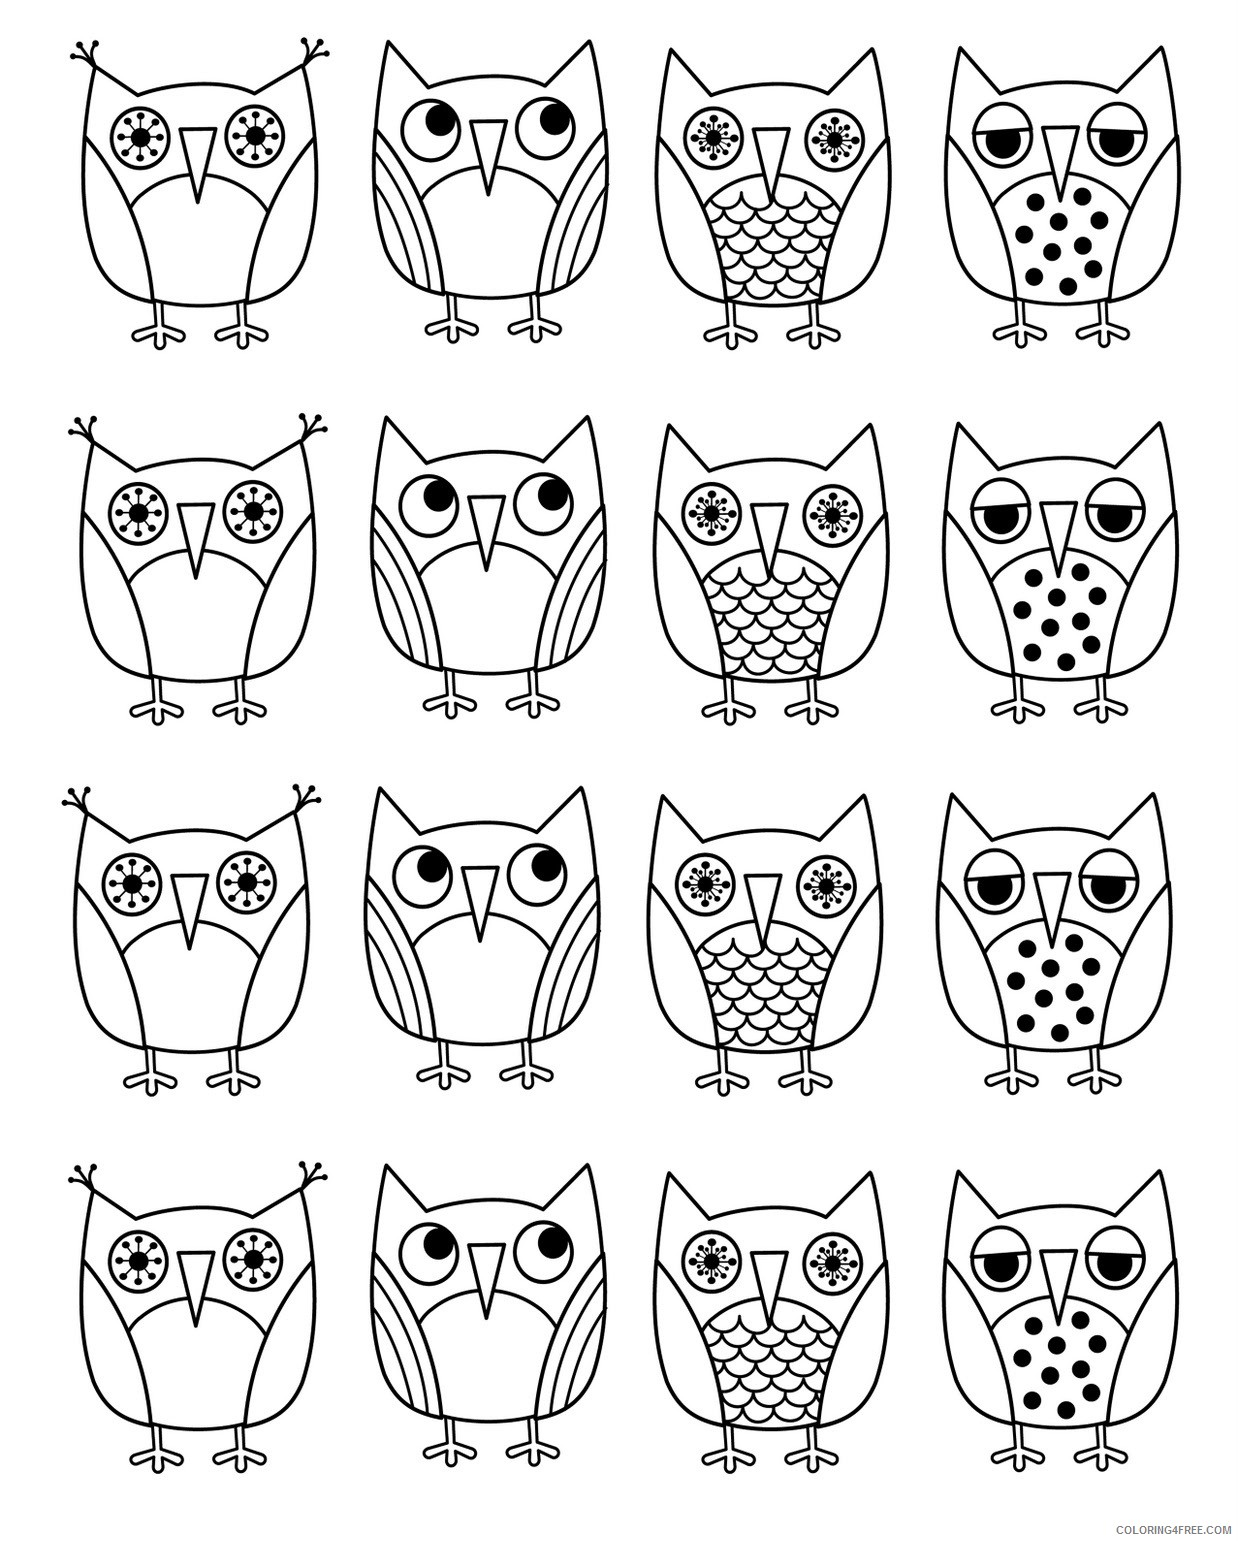 - Printable Cartoon Owl Coloring Pages Coloring4free - Coloring4Free.com